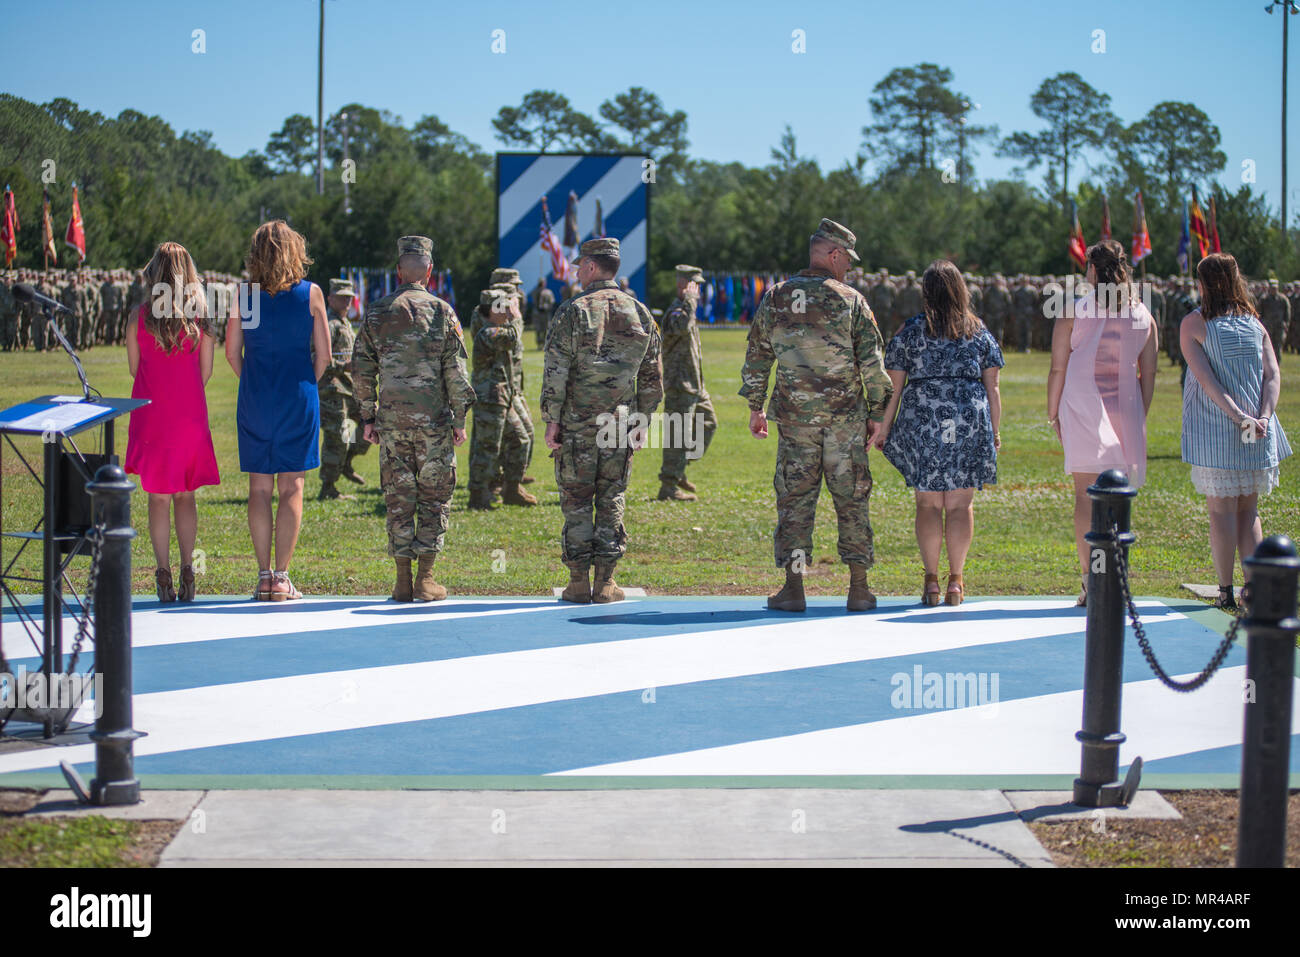 Maj. Gen. Leopoldo Quintas and his family, left, Gen. Robert Abrams and his wife, center, and Maj. Gen. James Rainey and his family, right, participate in the pass and review. The 3rd Infantry Division change of command ceremony was held on Cotrell Field at Fort Stewart, GA, May 8, 2017. (U.S. Army Photo by Lt. Col. Brian J. Fickel) Stock Photo